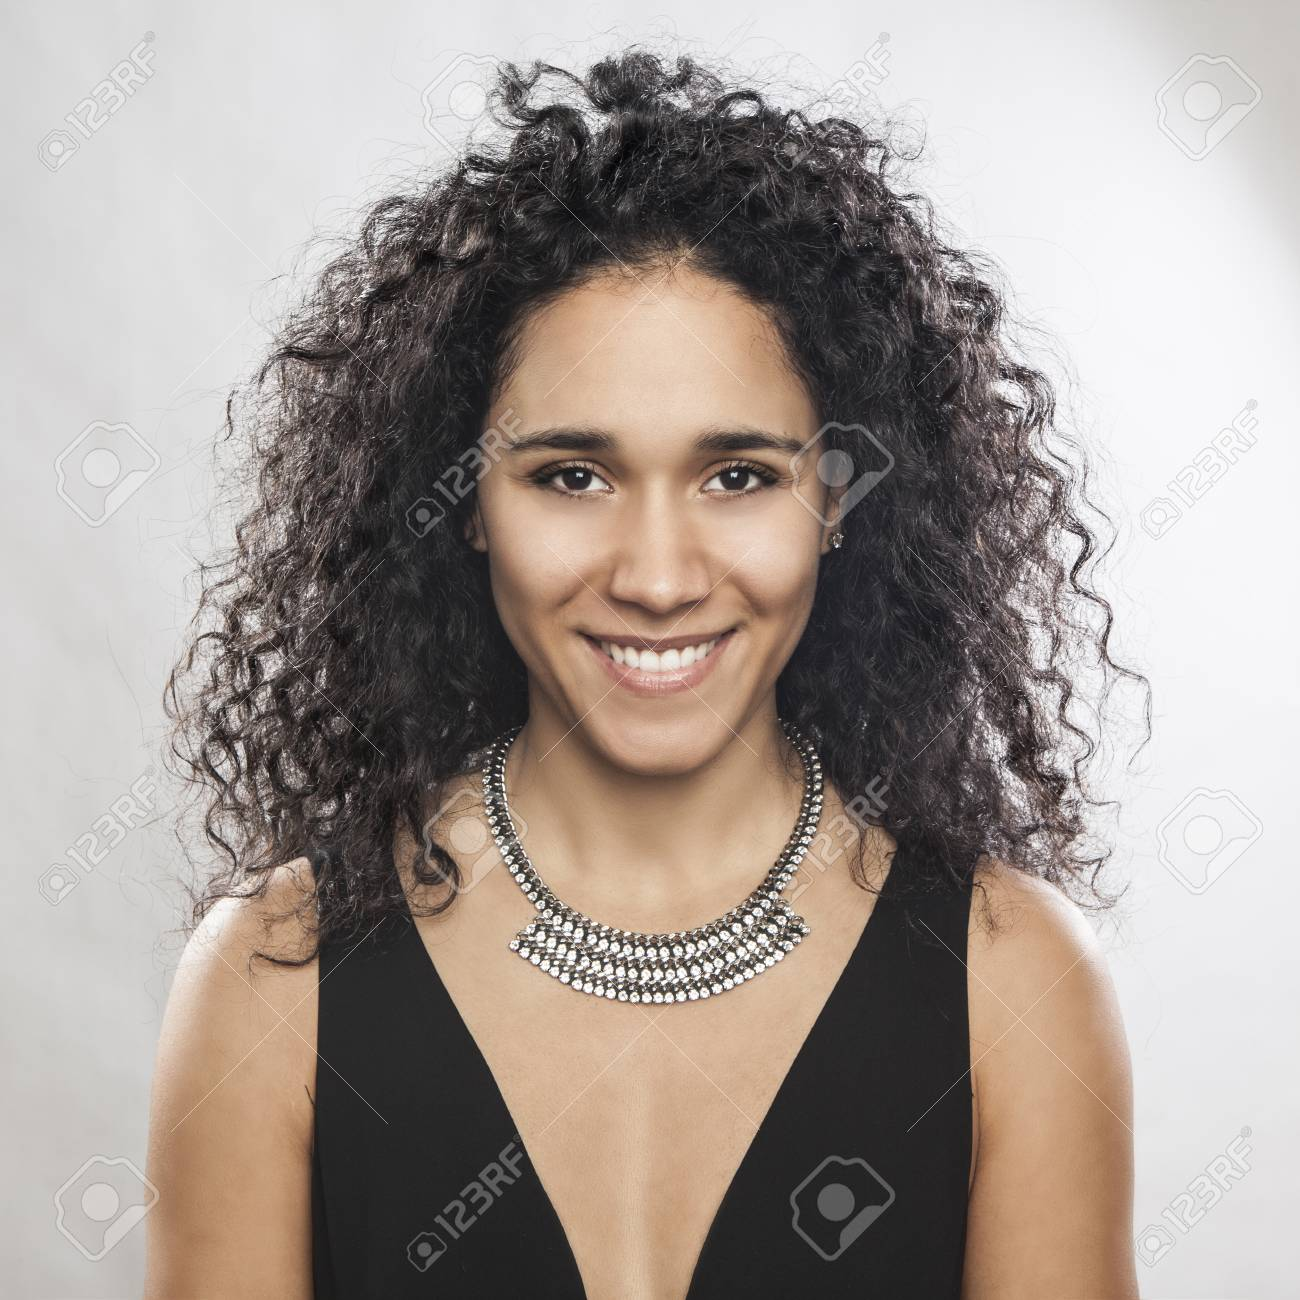 Portrait Of A Beautiful Mixed Race Woman Stock Photo Picture And Royalty Free Image Image 70764354